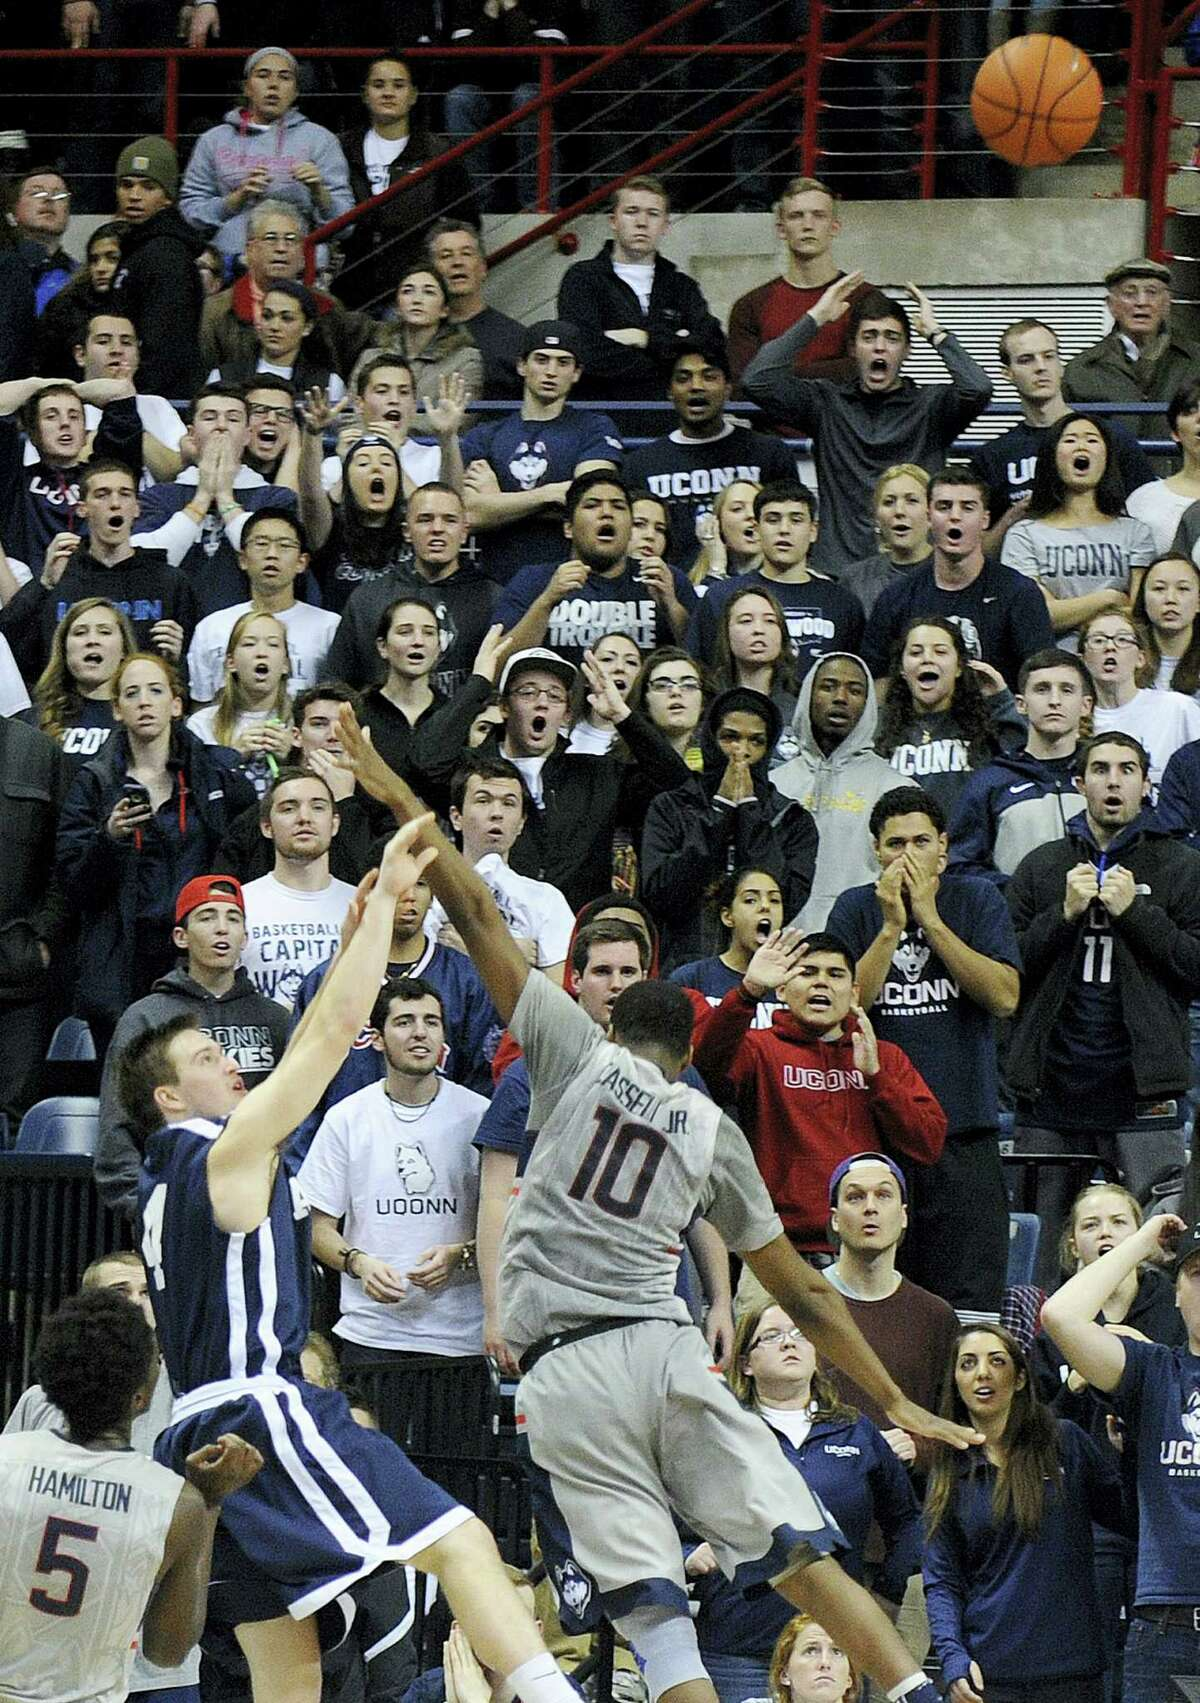 Yale's Jack Montague (4) shoots a game winning three-point shot while being guarded by Connecticut's Sam Cassell Jr. (10) during the second half of Yale's 45-44 upset victory in an NCAA college basketball game in Storrs, Conn., on Sunday, Dec. 5, 2014.